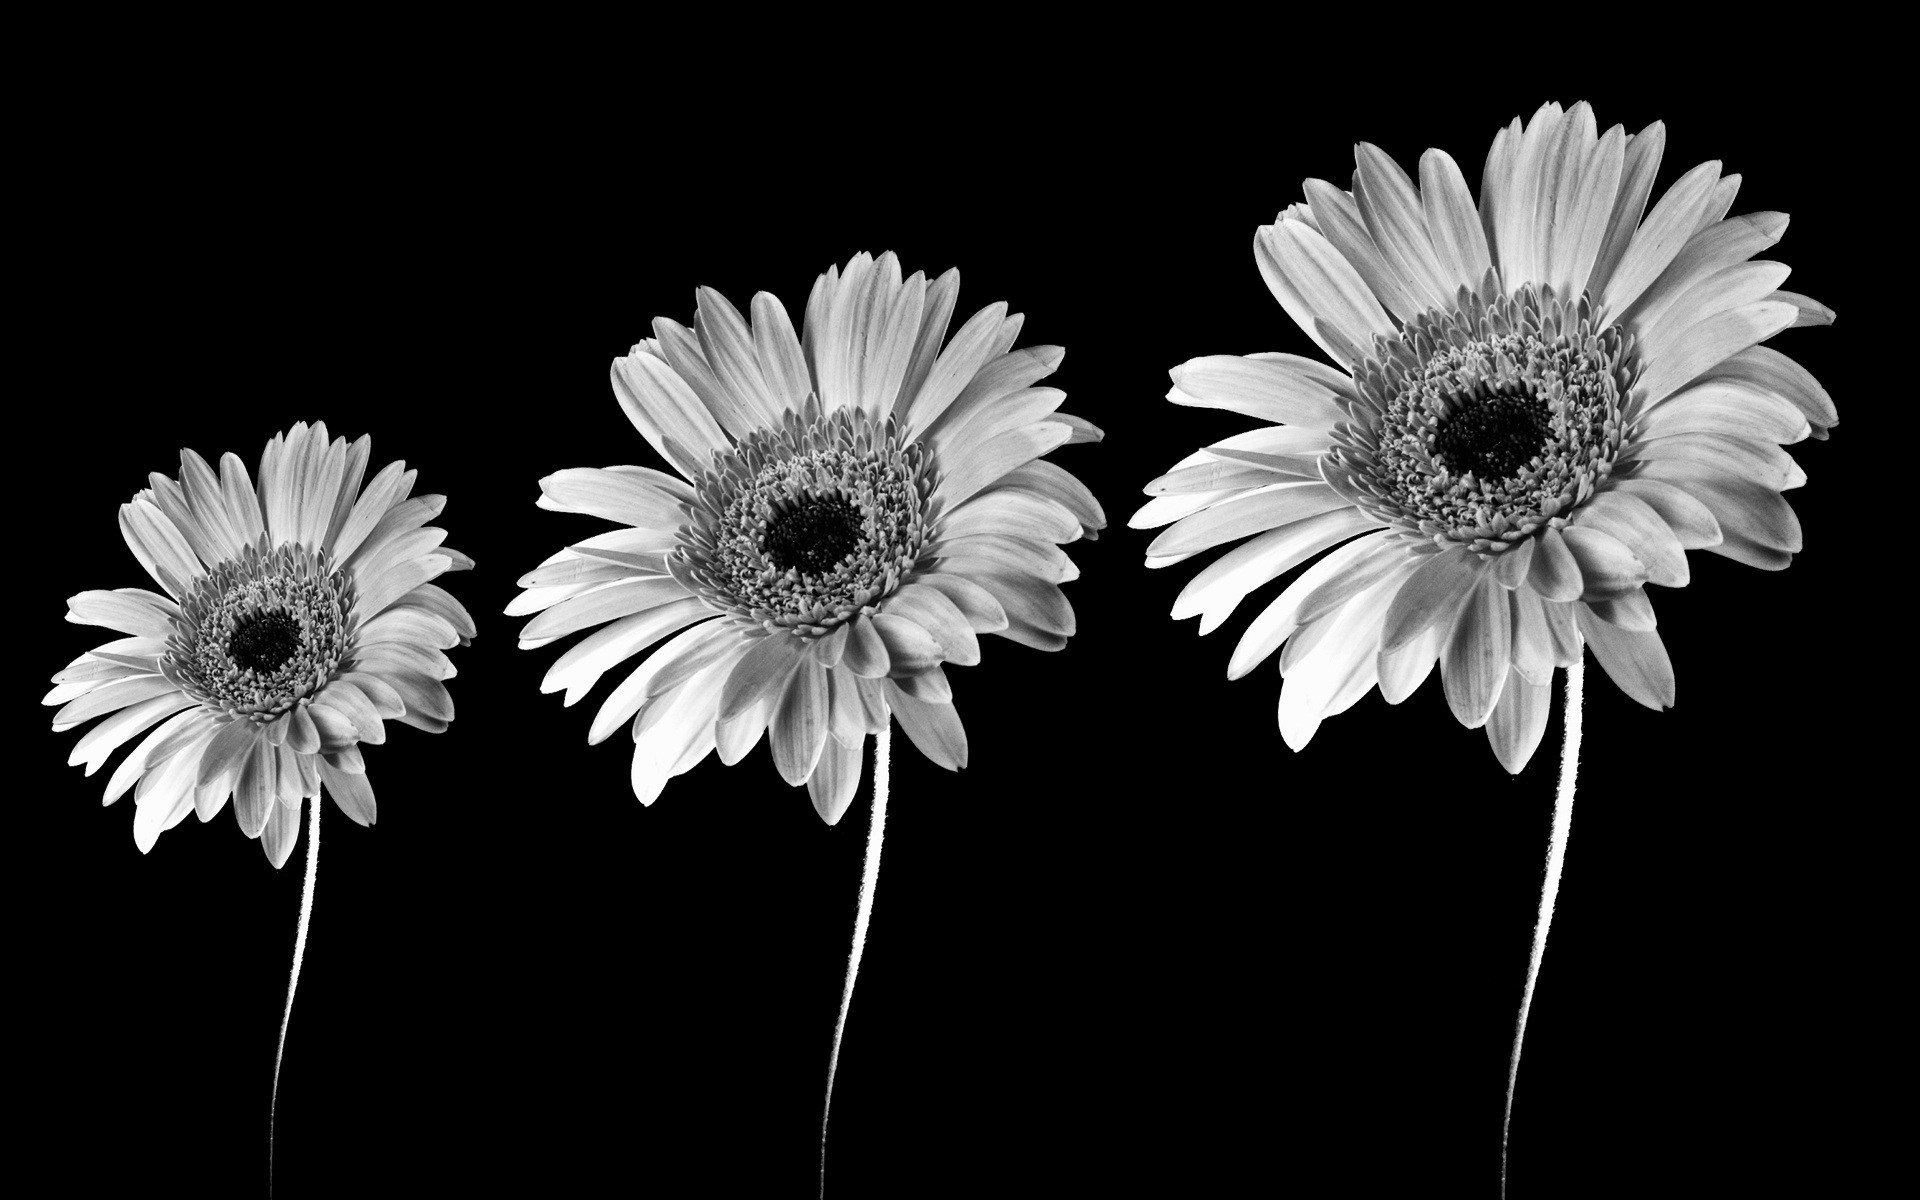 Black And White Images Of Flowers 28 Hd Wallpaper ...